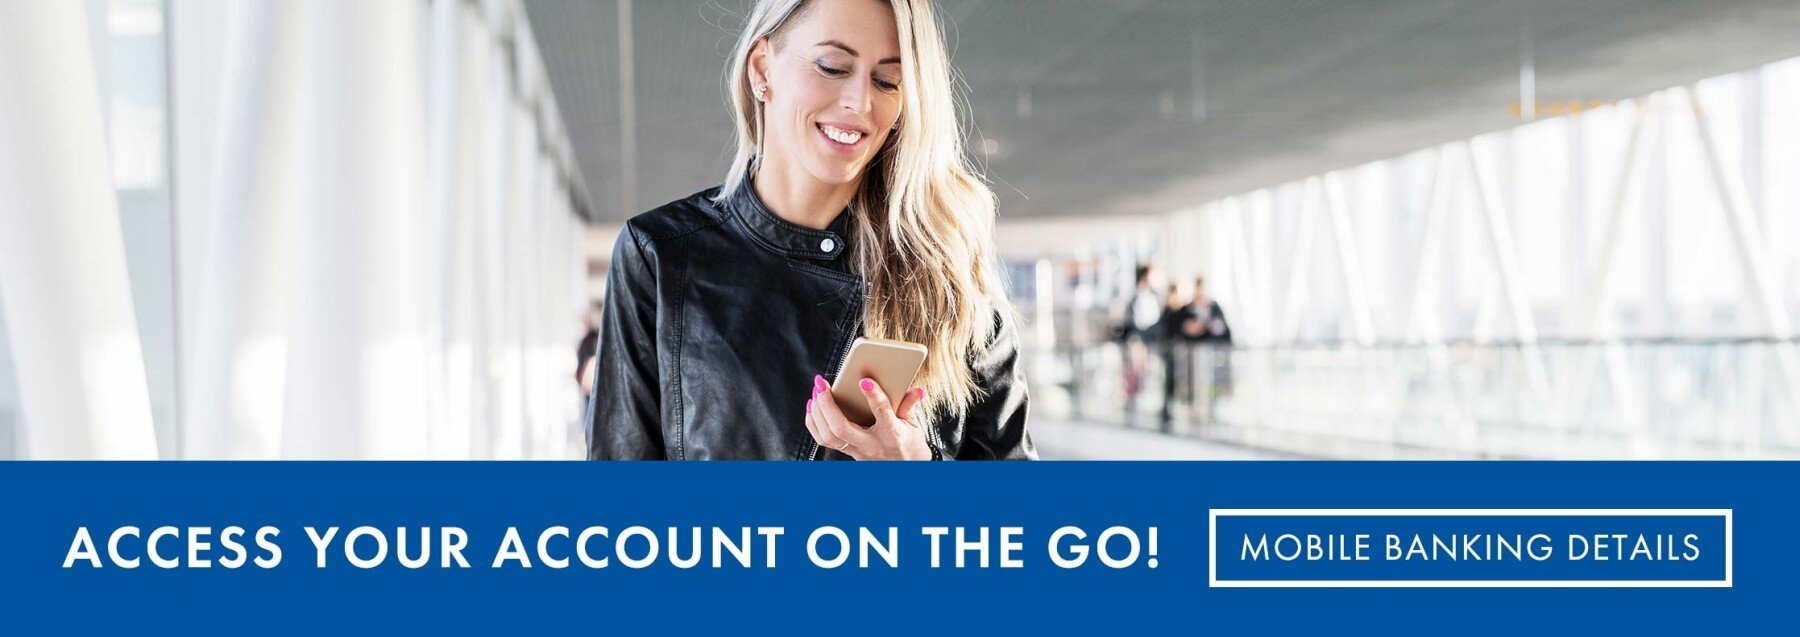 Access your account on the go! Click for mobile banking details